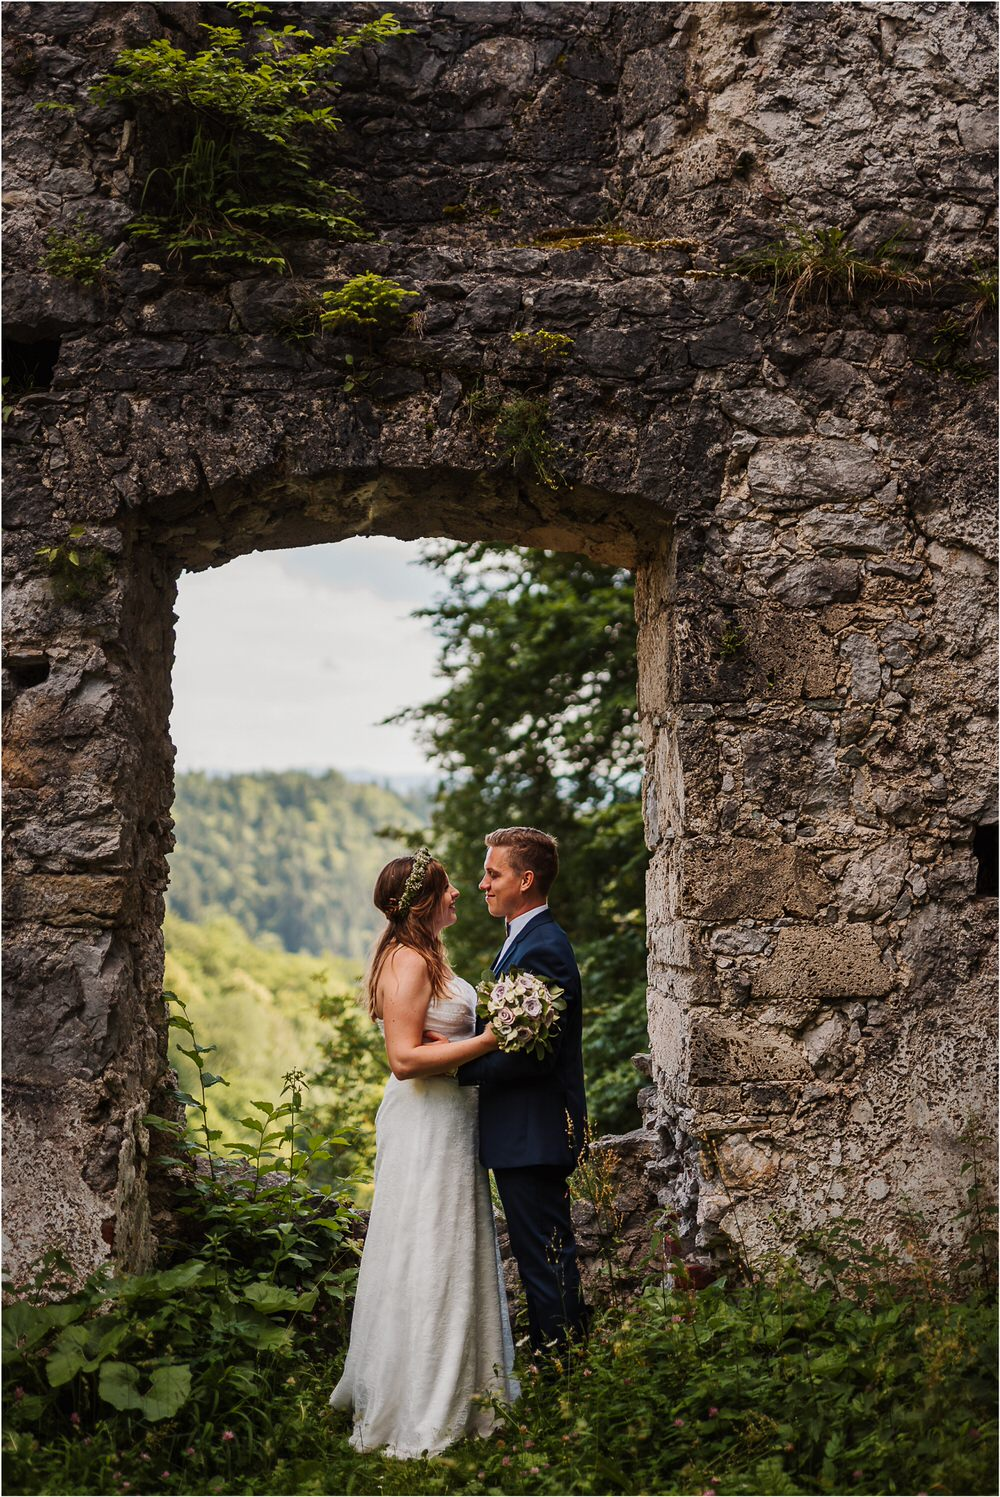 destination wedding italy greece ireland france uk photographer poroka poročni fotograf poročno fotografiranje gredič tri lučke bled tuscany 0131.jpg